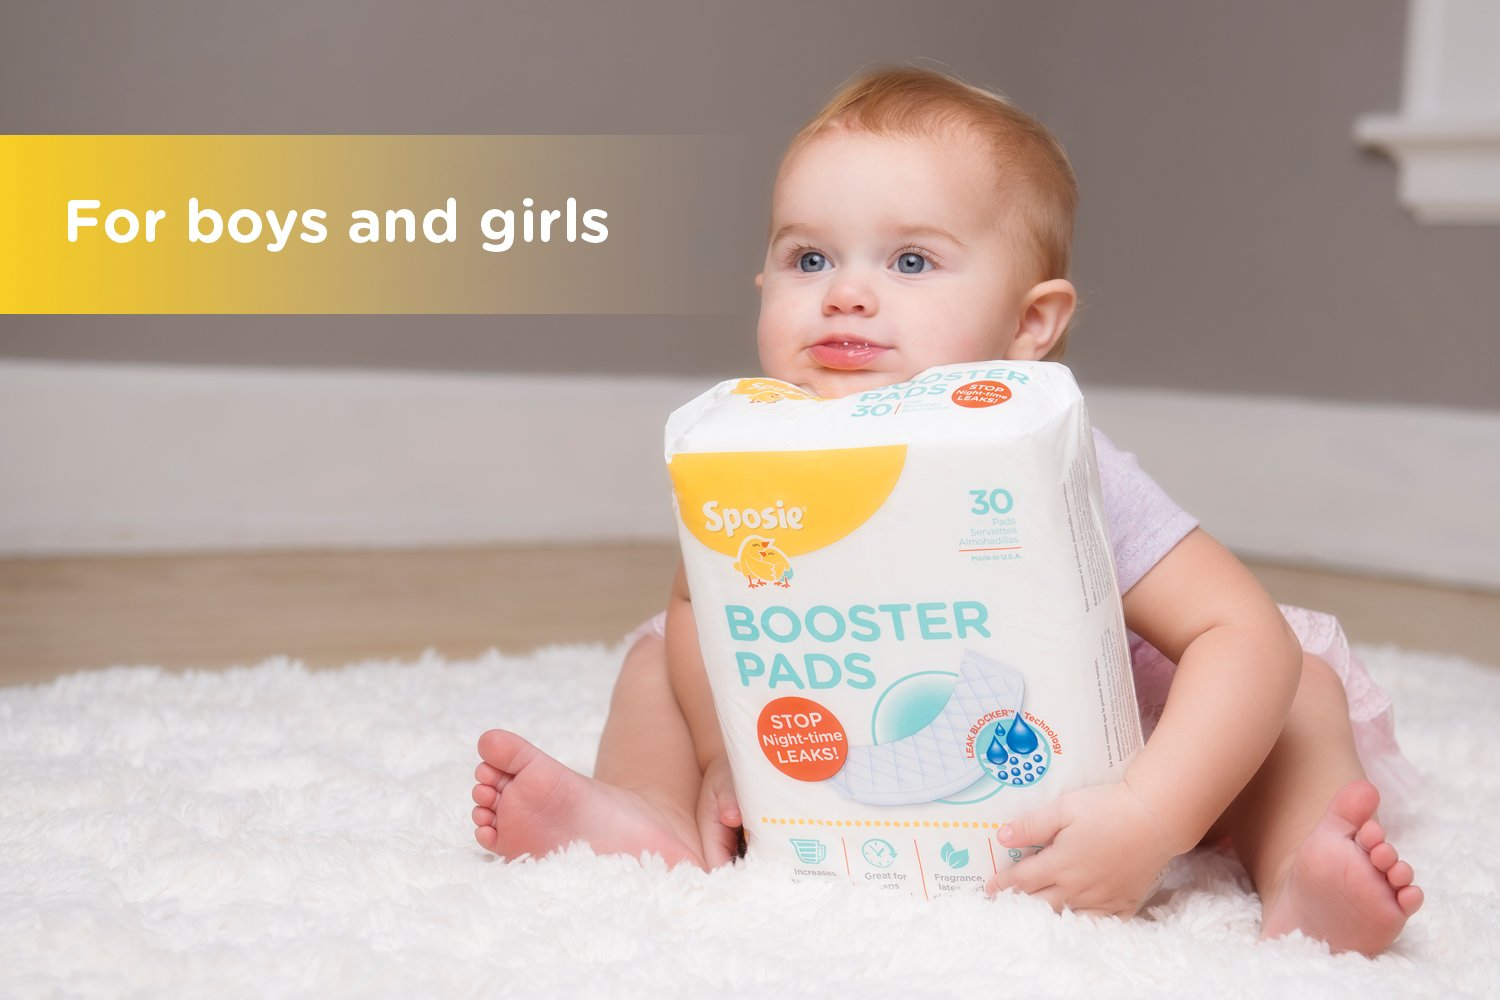 Sposie Booster Pads Diaper Doubler, 90 Count, 3 Packs of 30 Pads by Select Kids (Image #7)